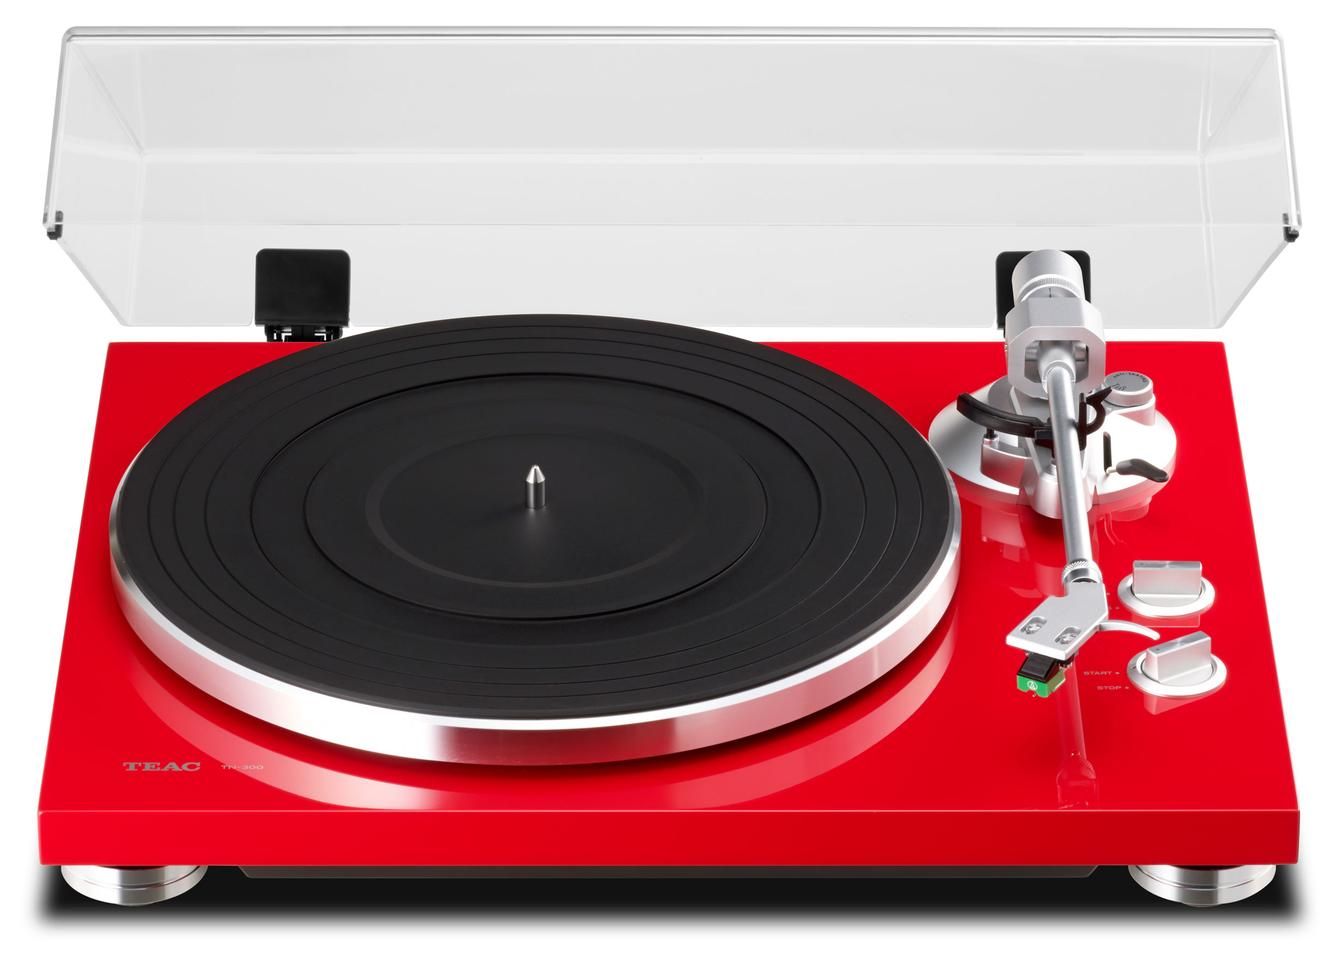 The TEAC TN-300 turntable